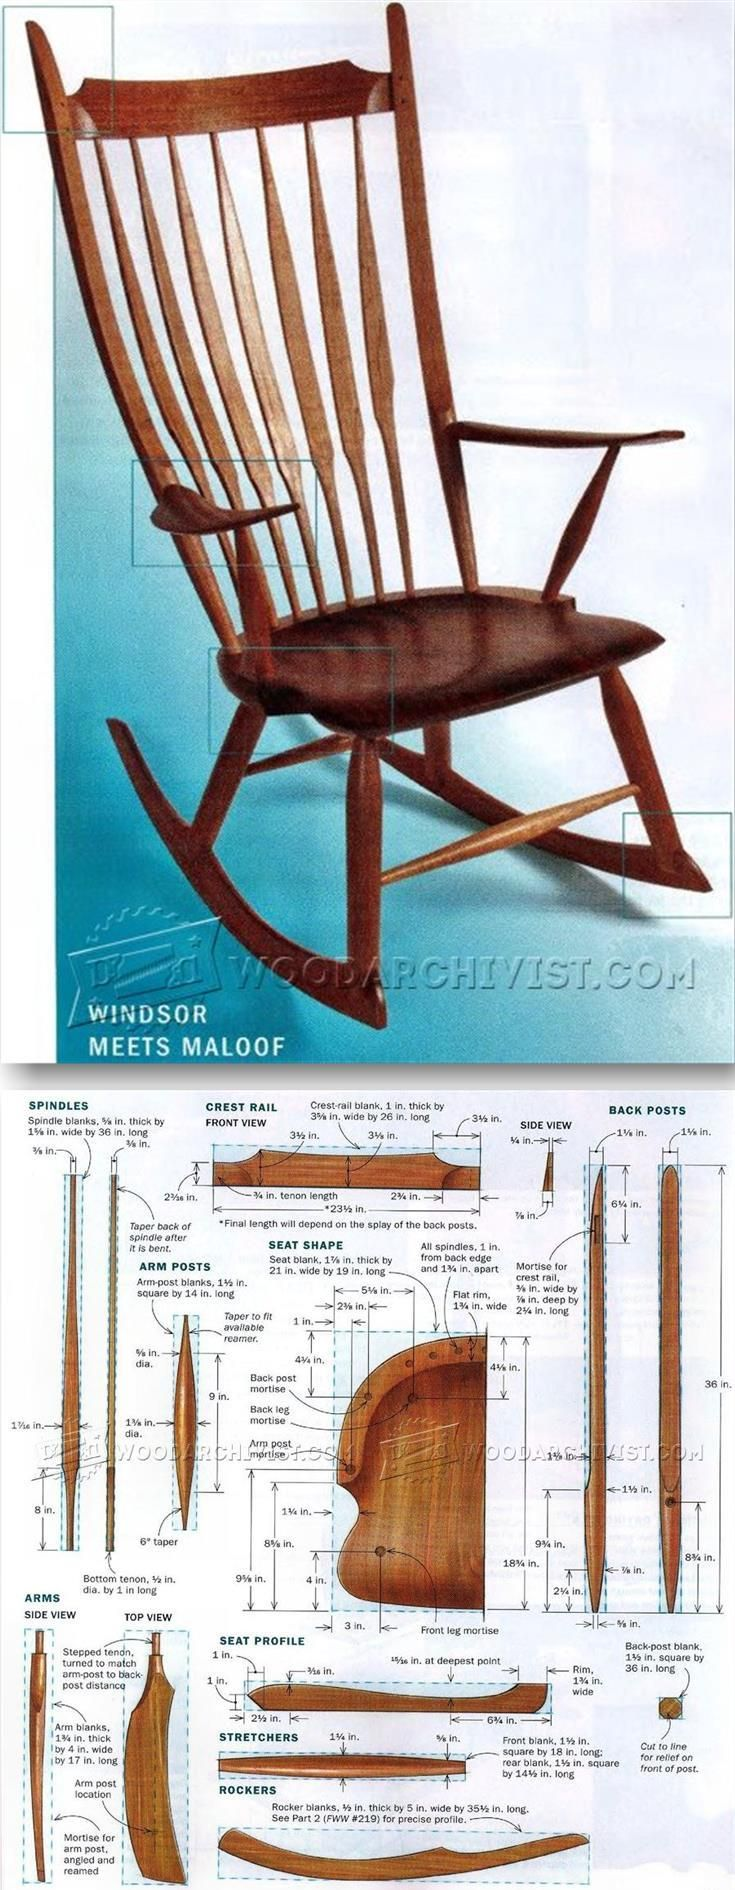 3418 Best Rocking chairs images | Rocking chair, Chair